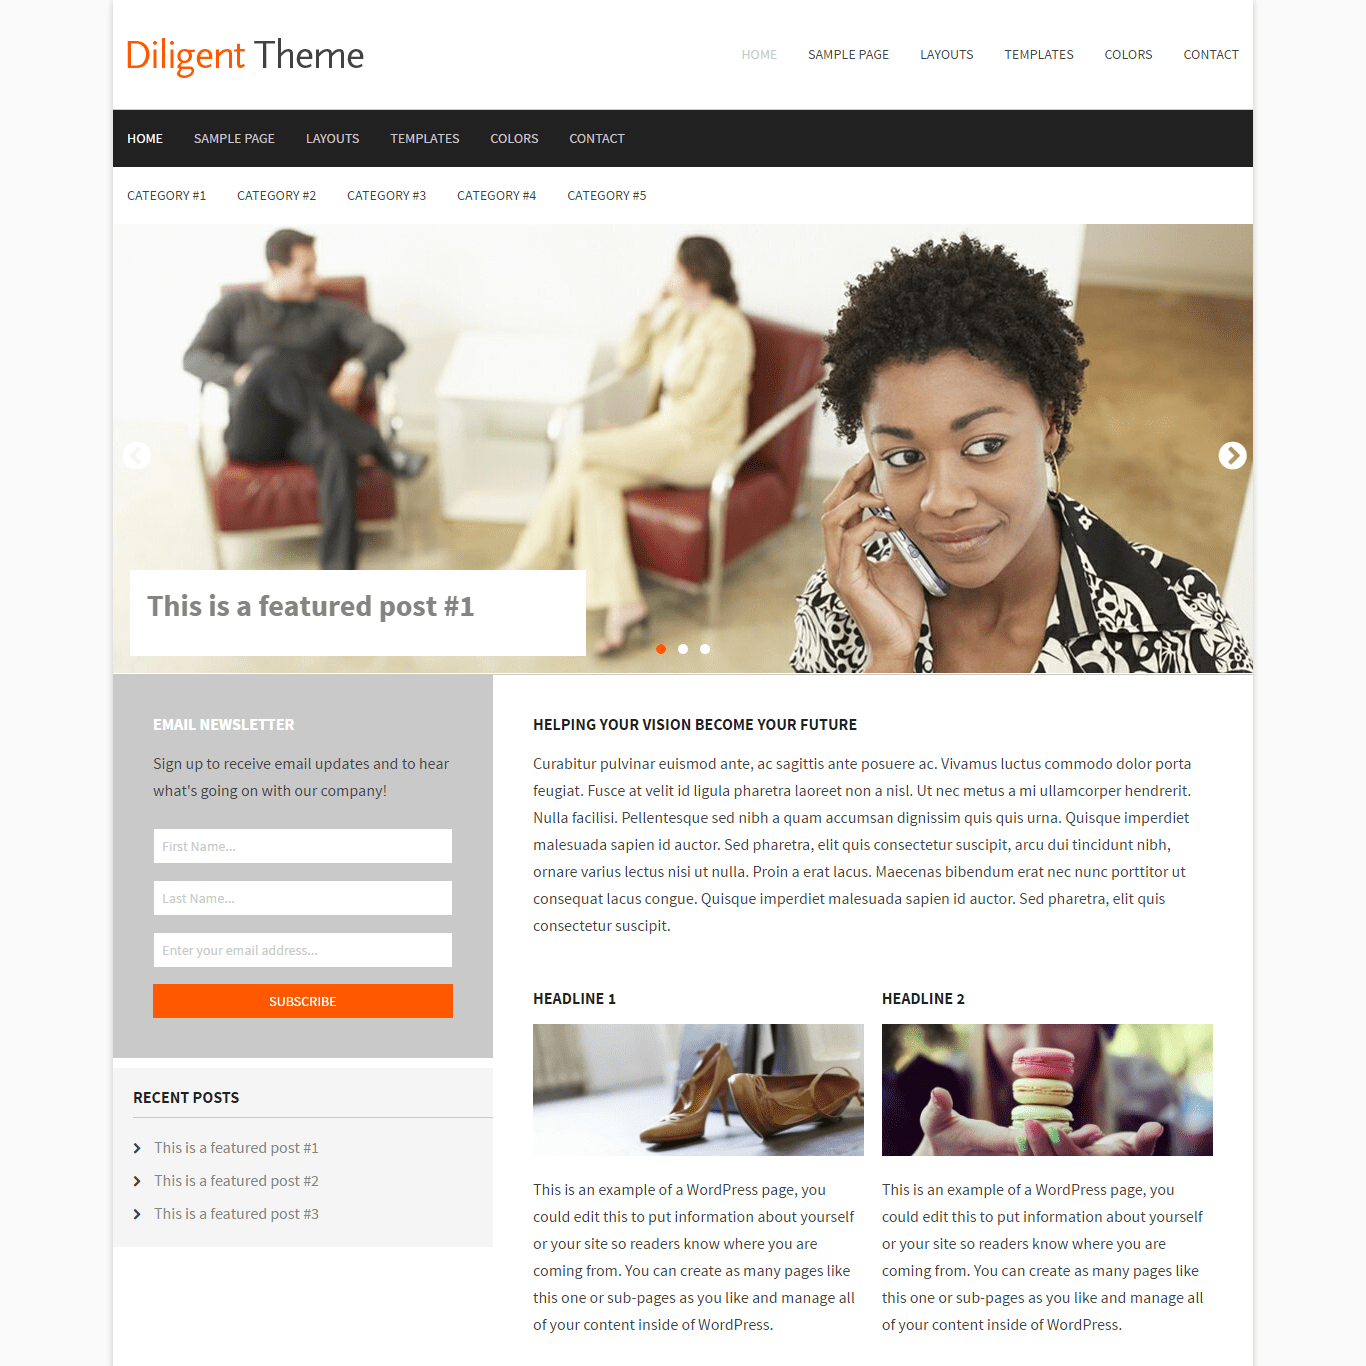 Get a free website with Diligent by Claro Themes on Talenthost